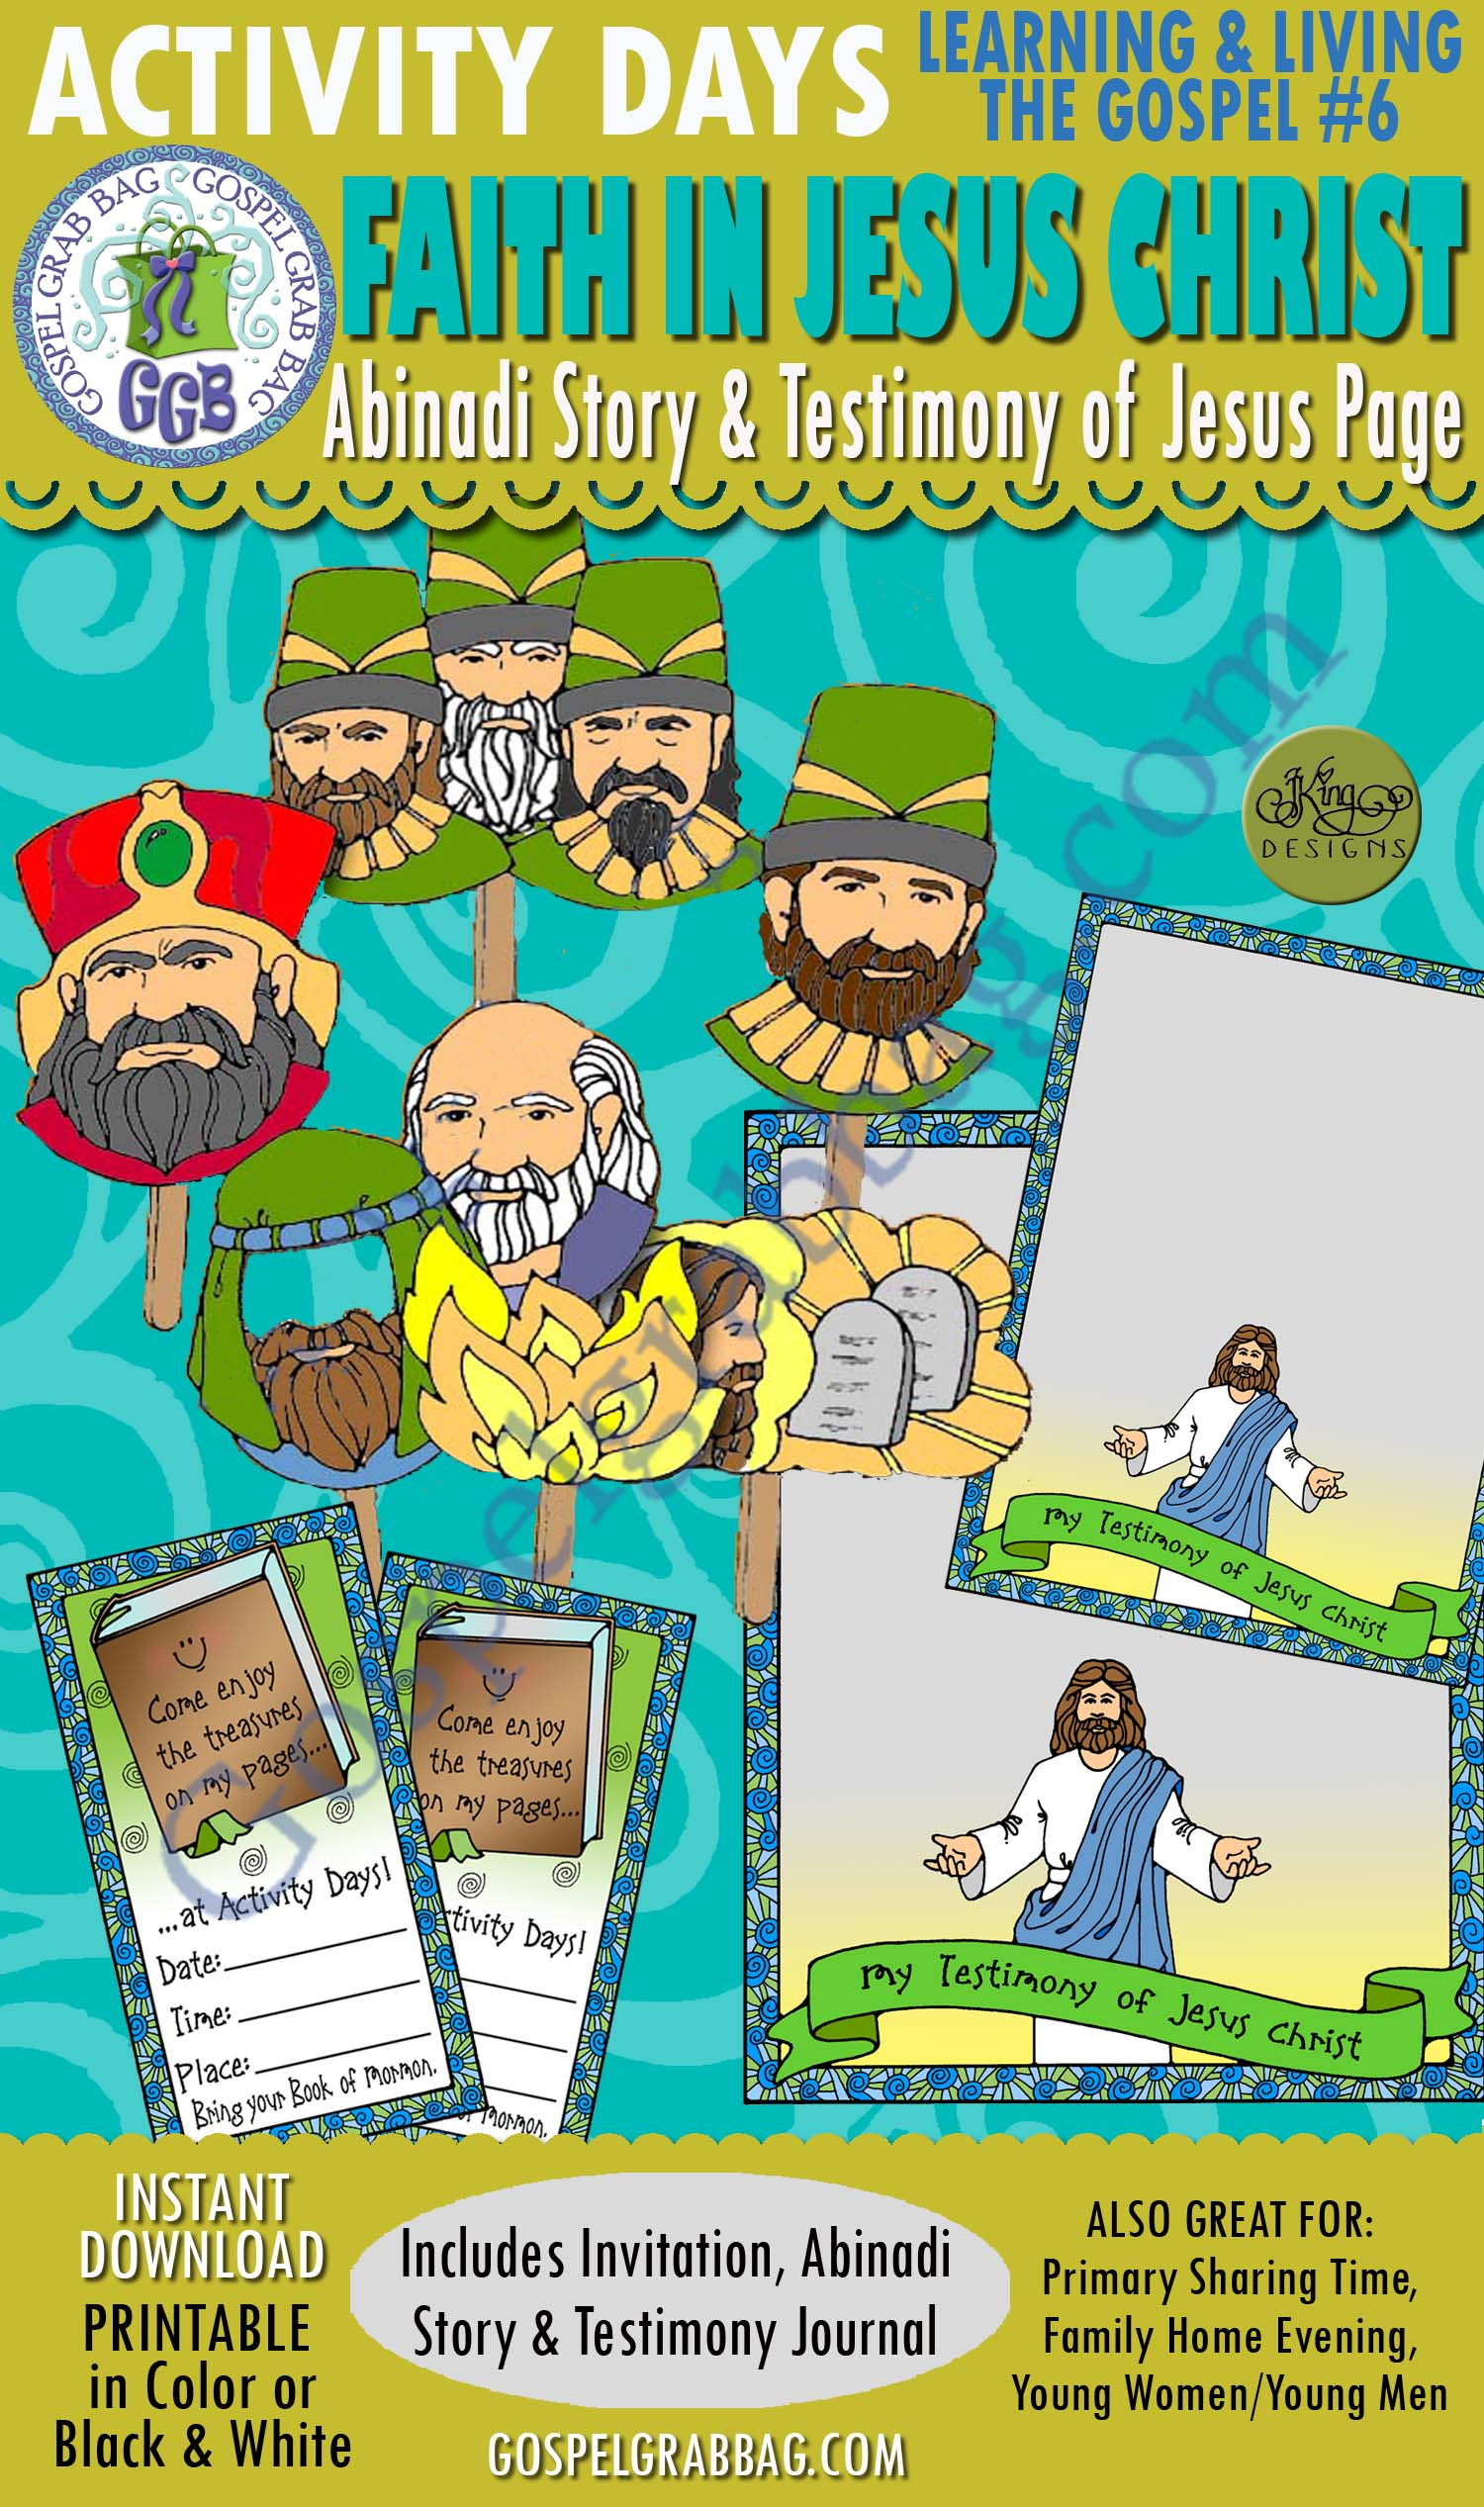 BOOK OF MORMON Testimony of Jesus Christ: Activity Days: Learning and Living the Gospel, Goal 6 Invitation, Activity: Abinadi Warns Wicked King Noah puppet show, and Testimony of Jesus journal page, GospelGrabBag.com